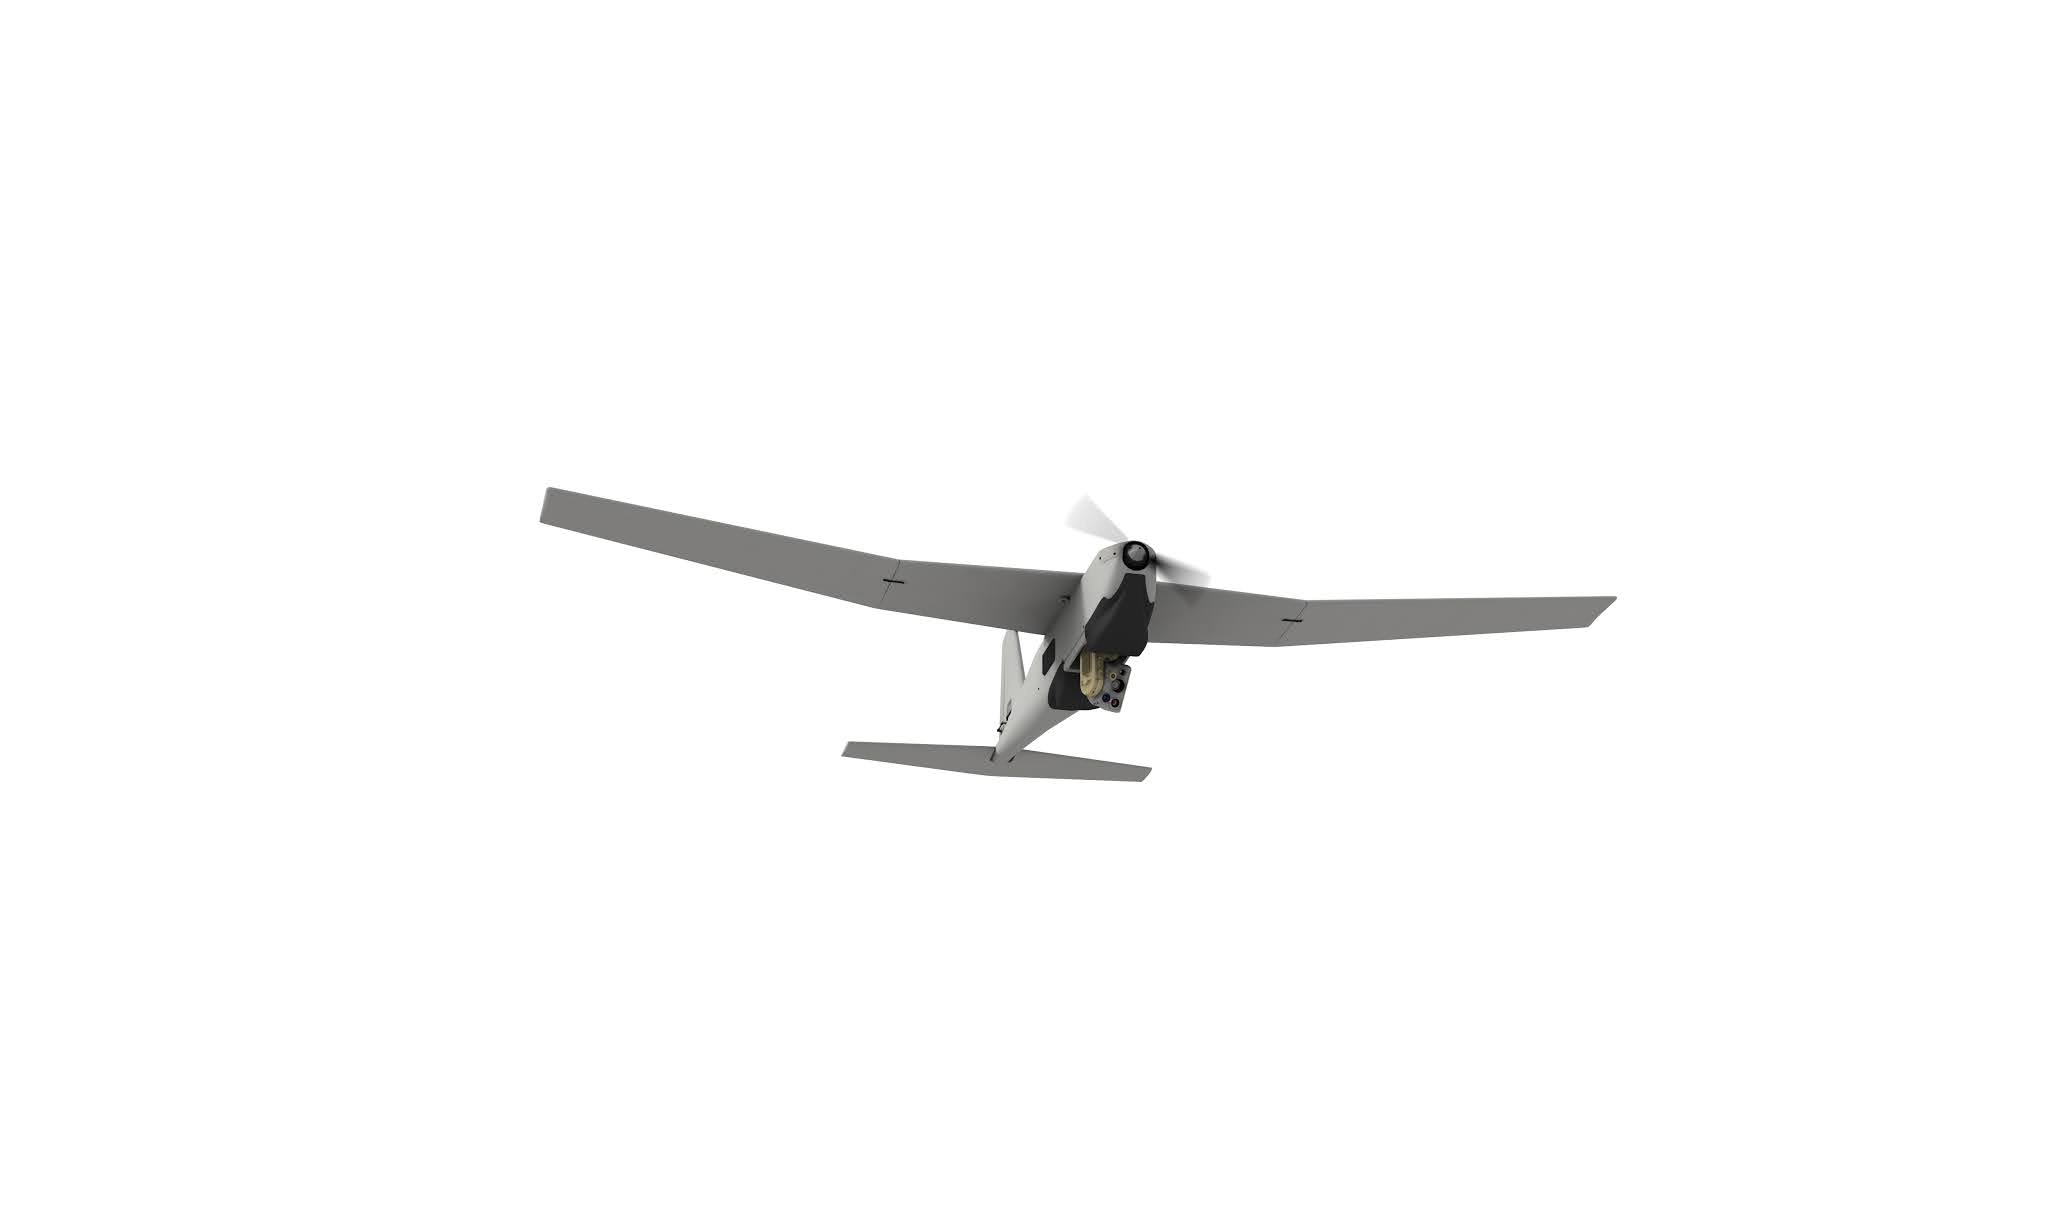 AeroVironment Secures $5.9 Million Puma 3 AE Unmanned Aircraft Systems Foreign Military Sales Contract Award for U.S. Ally